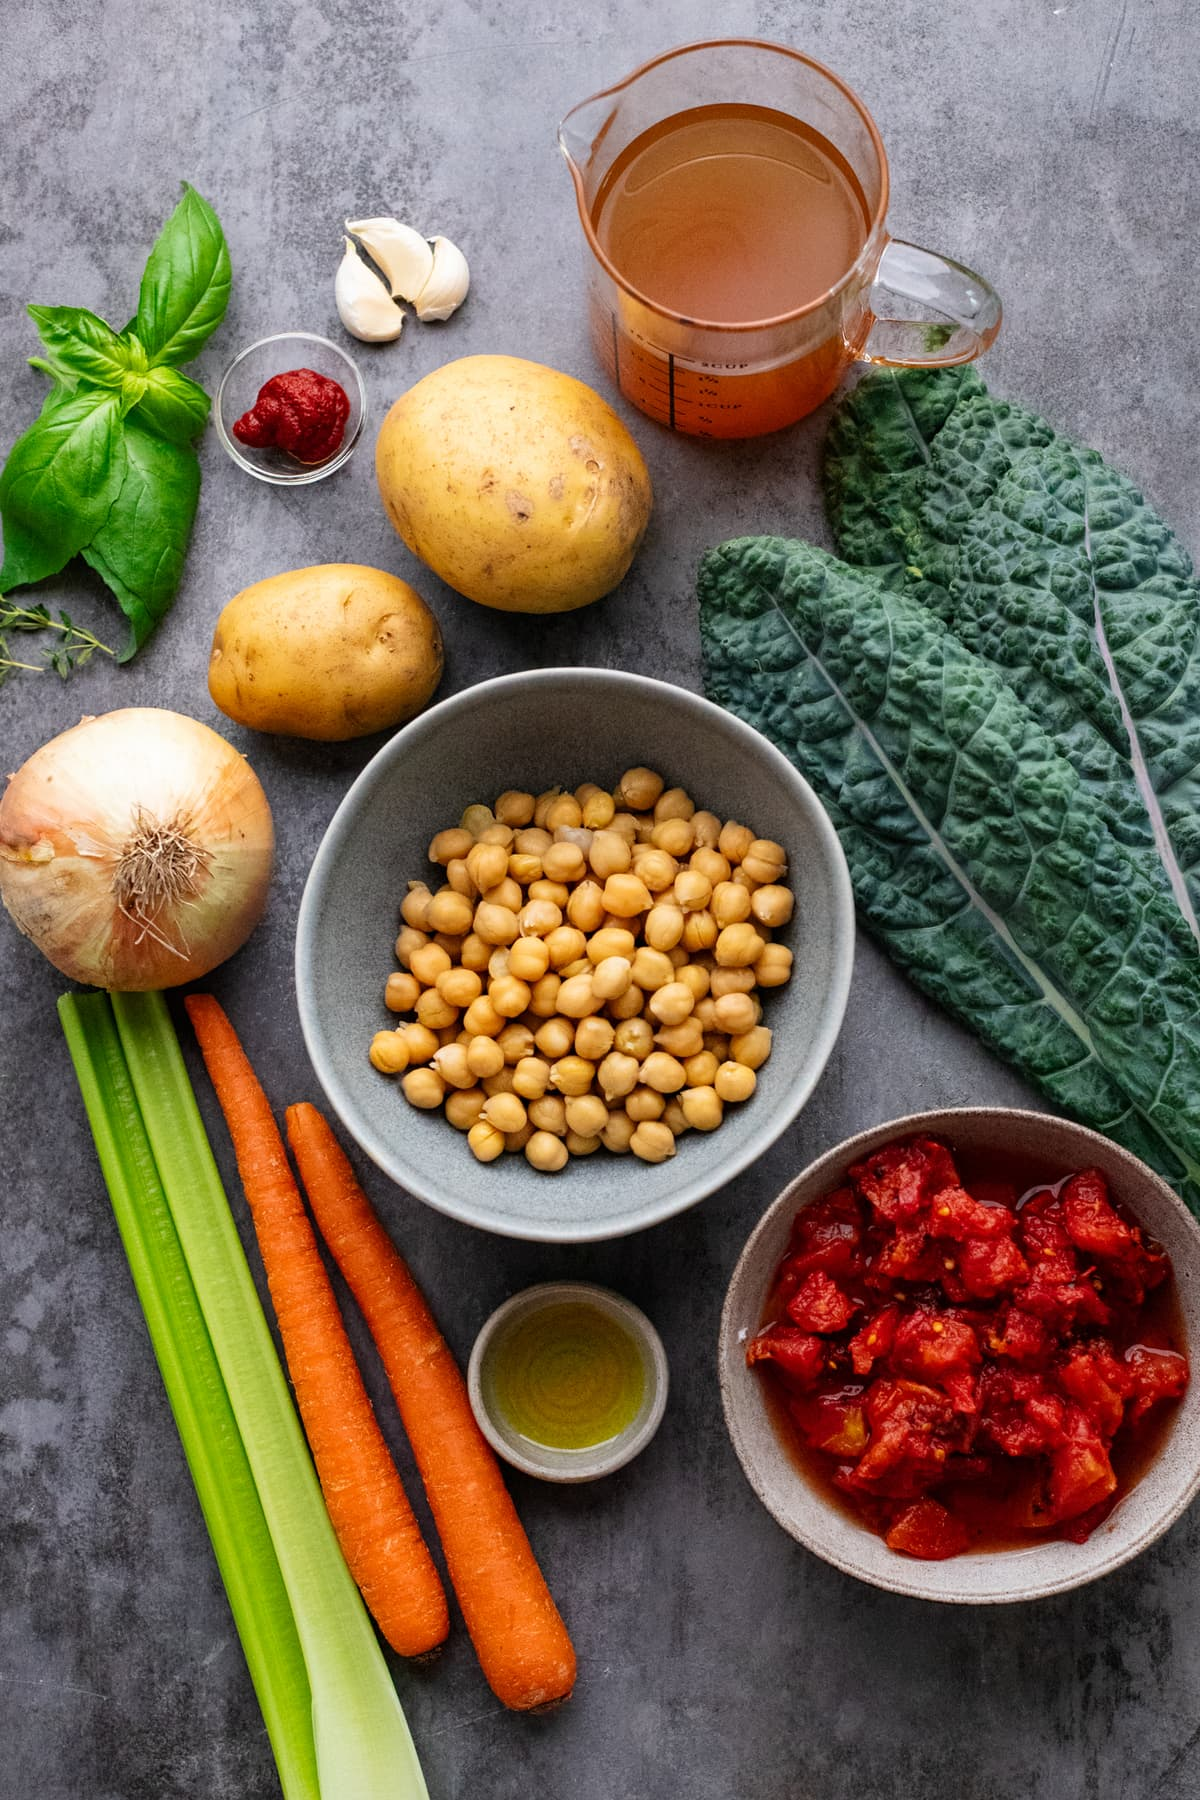 ingredients for chickpea soup arranged on gray background.